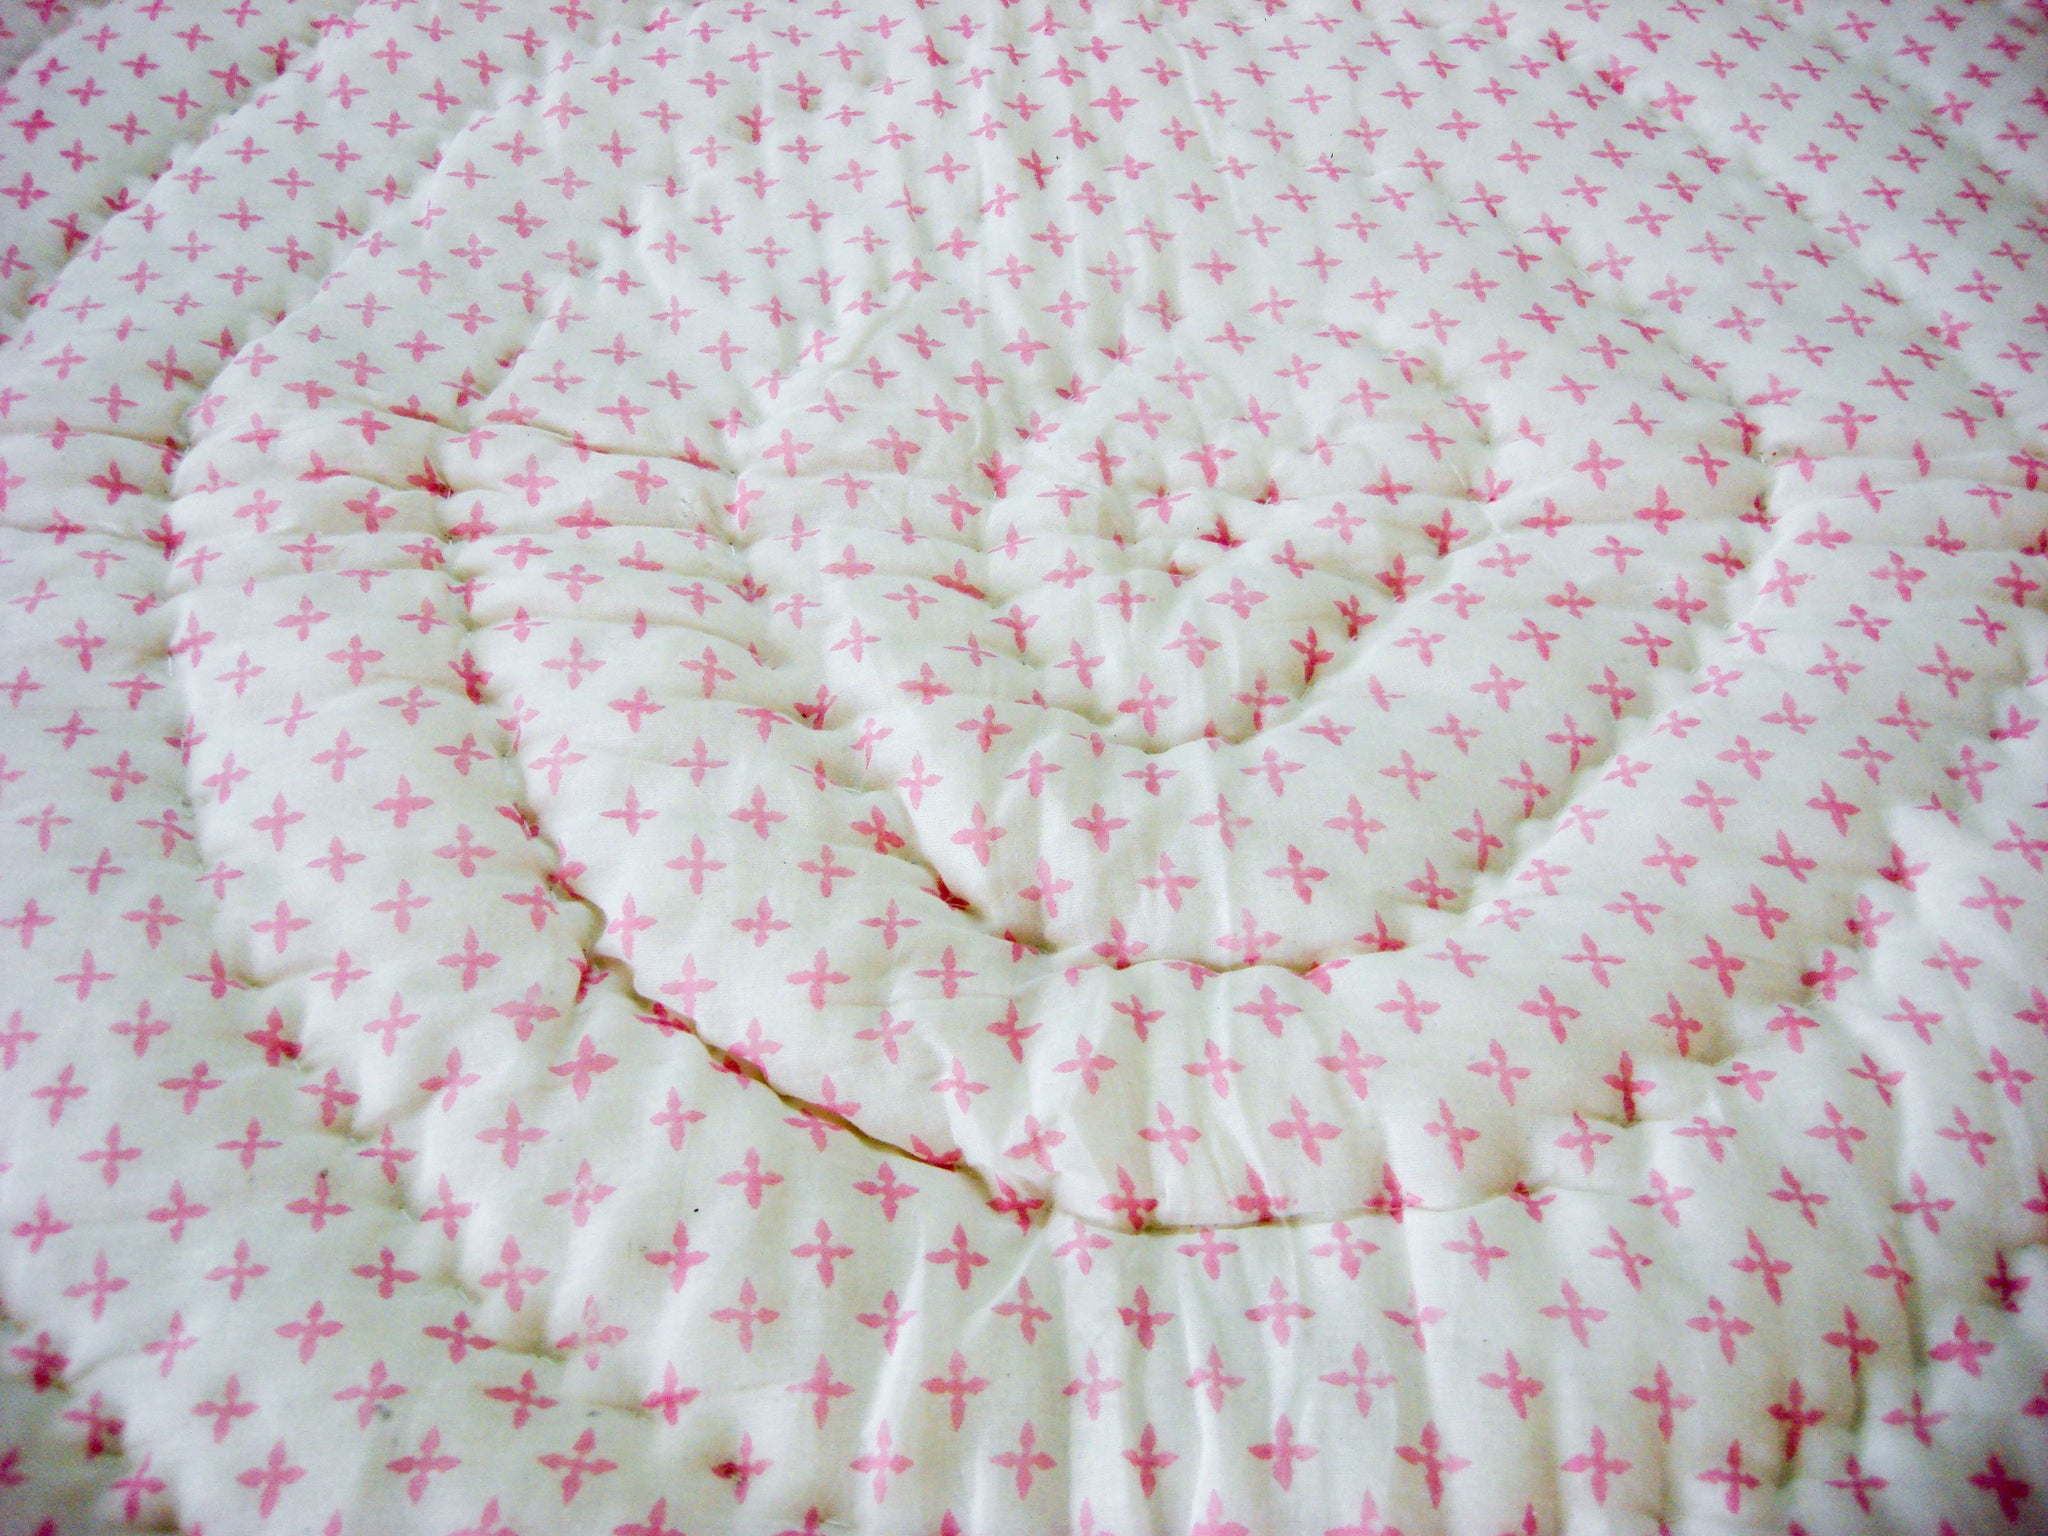 All New Roysha Handmade Cotton Queen Quilt in Pink Floral Pattern